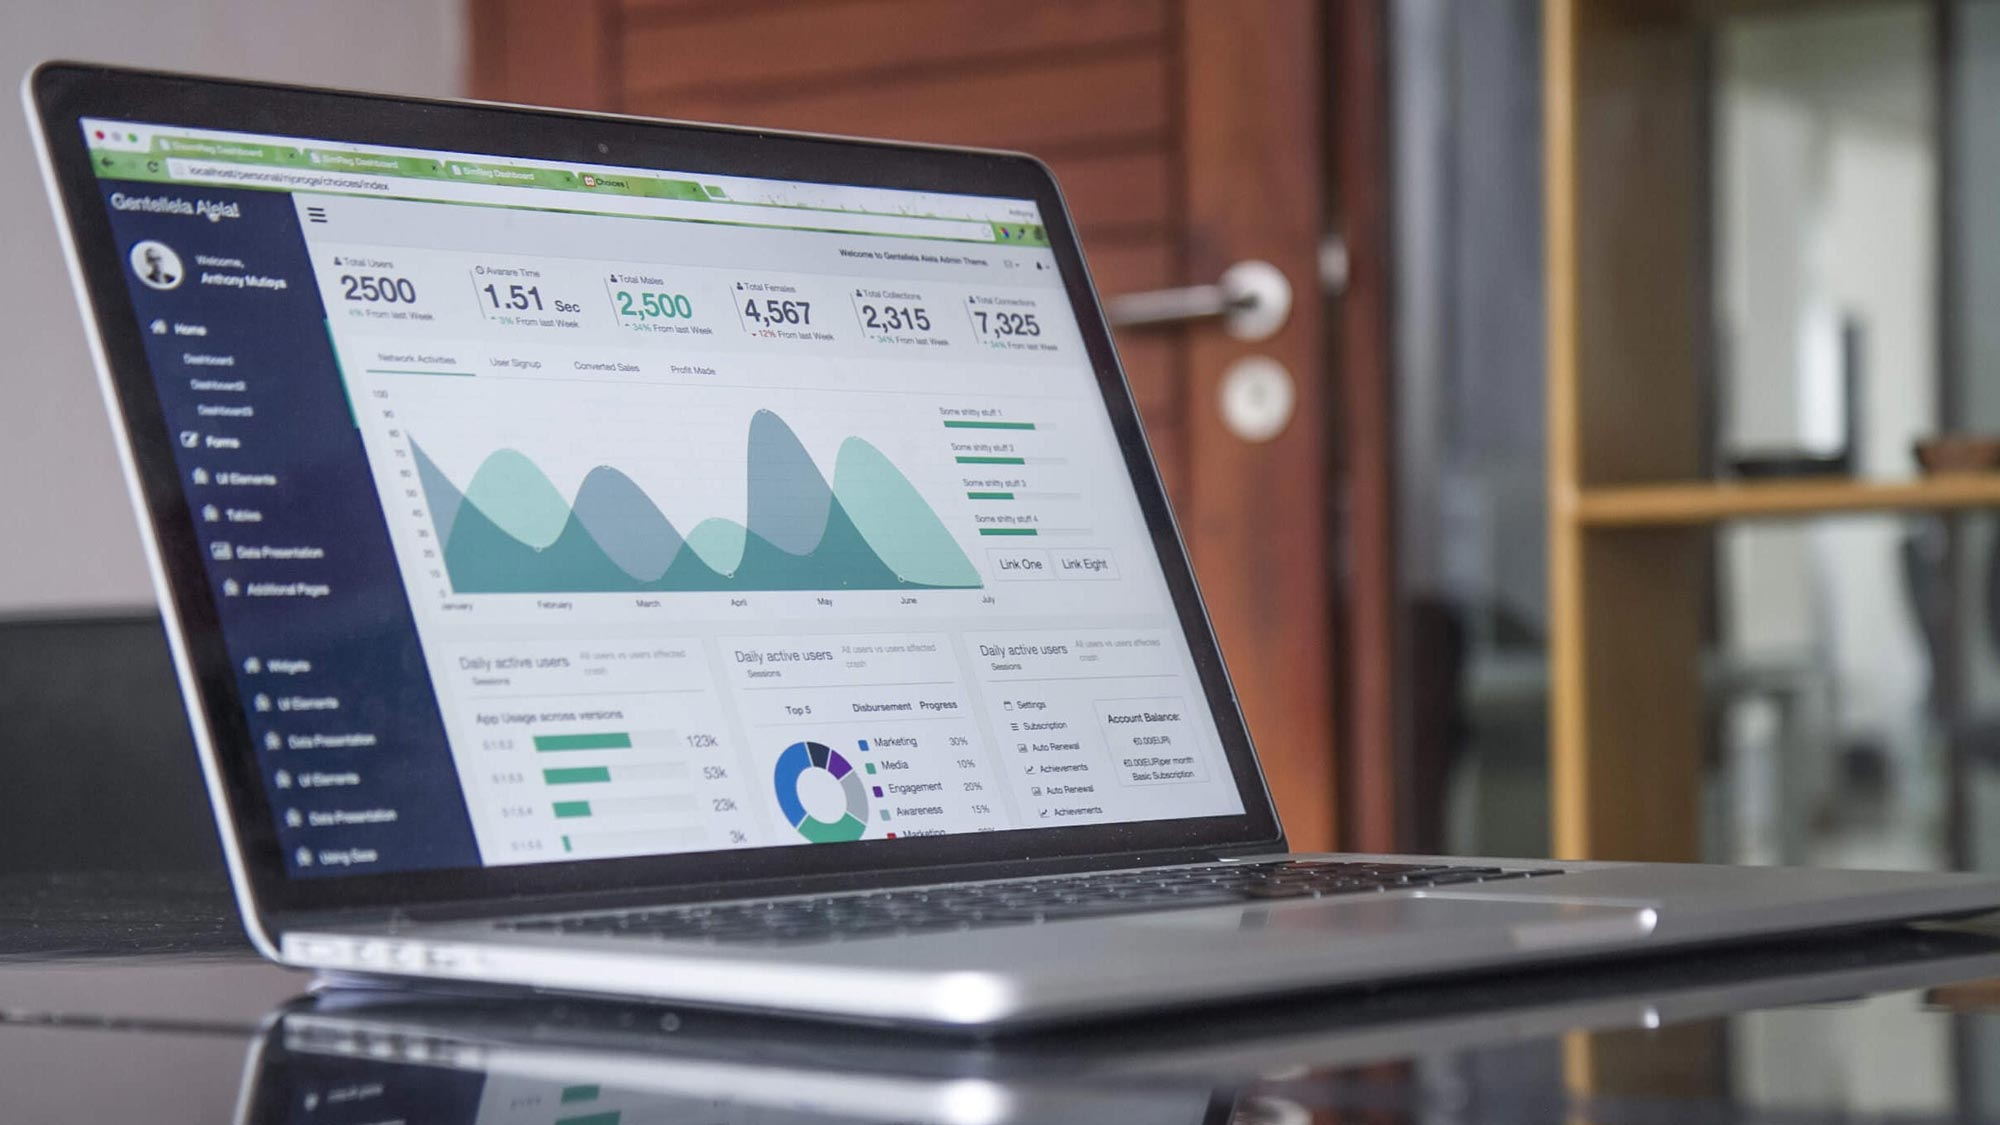 Strong analytics and reporting in lms